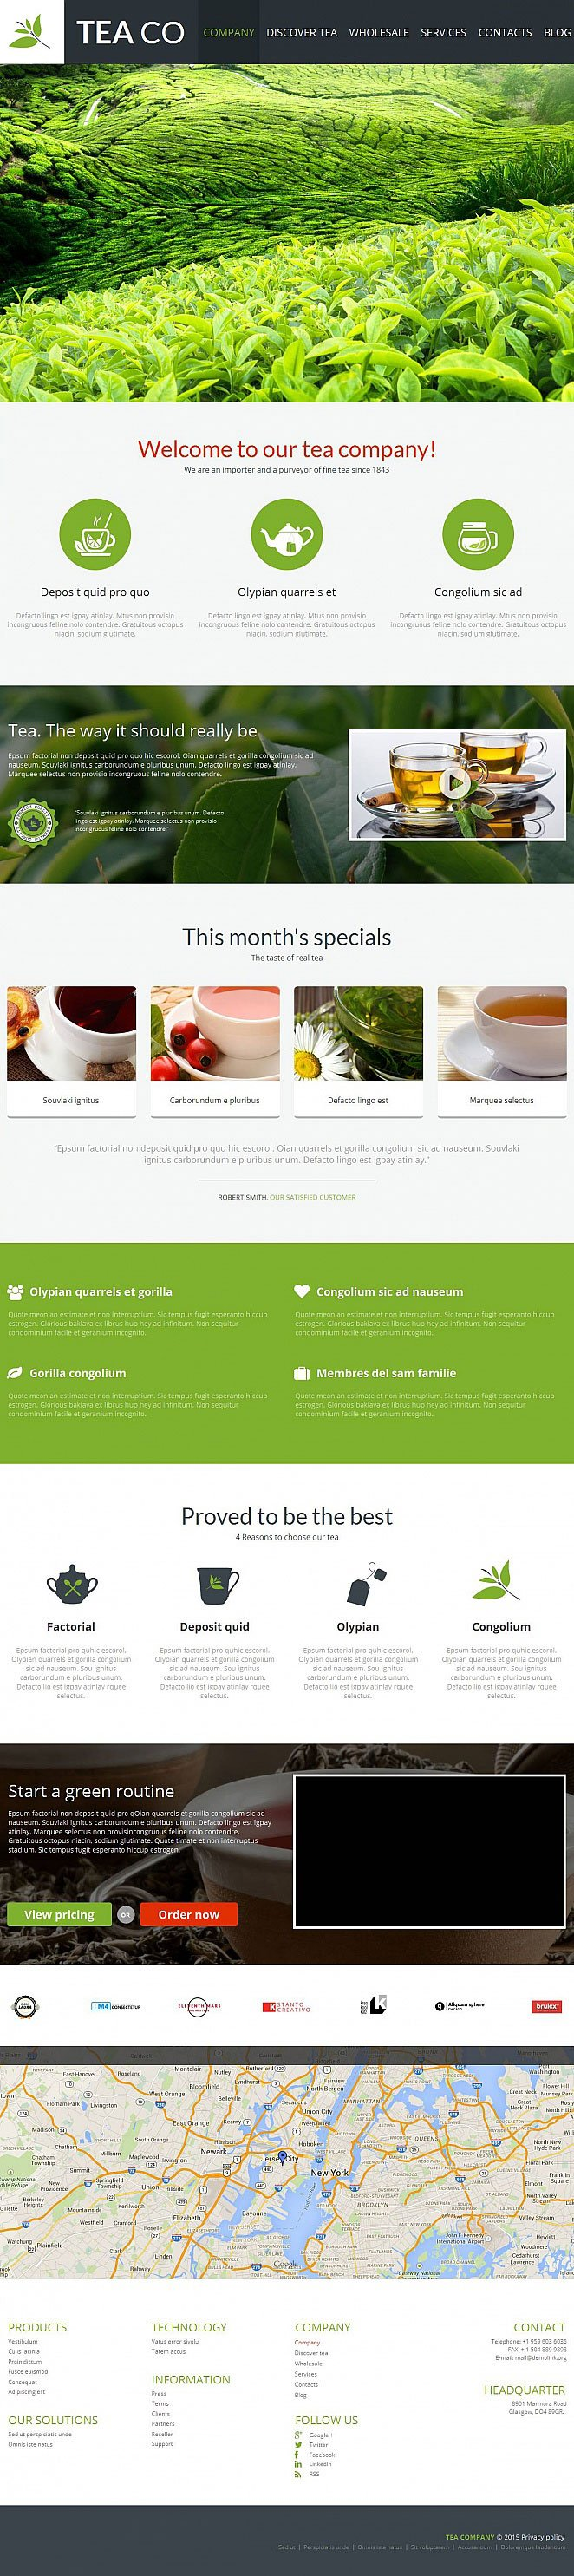 Tea Company Website Template with Home Page Slider - image